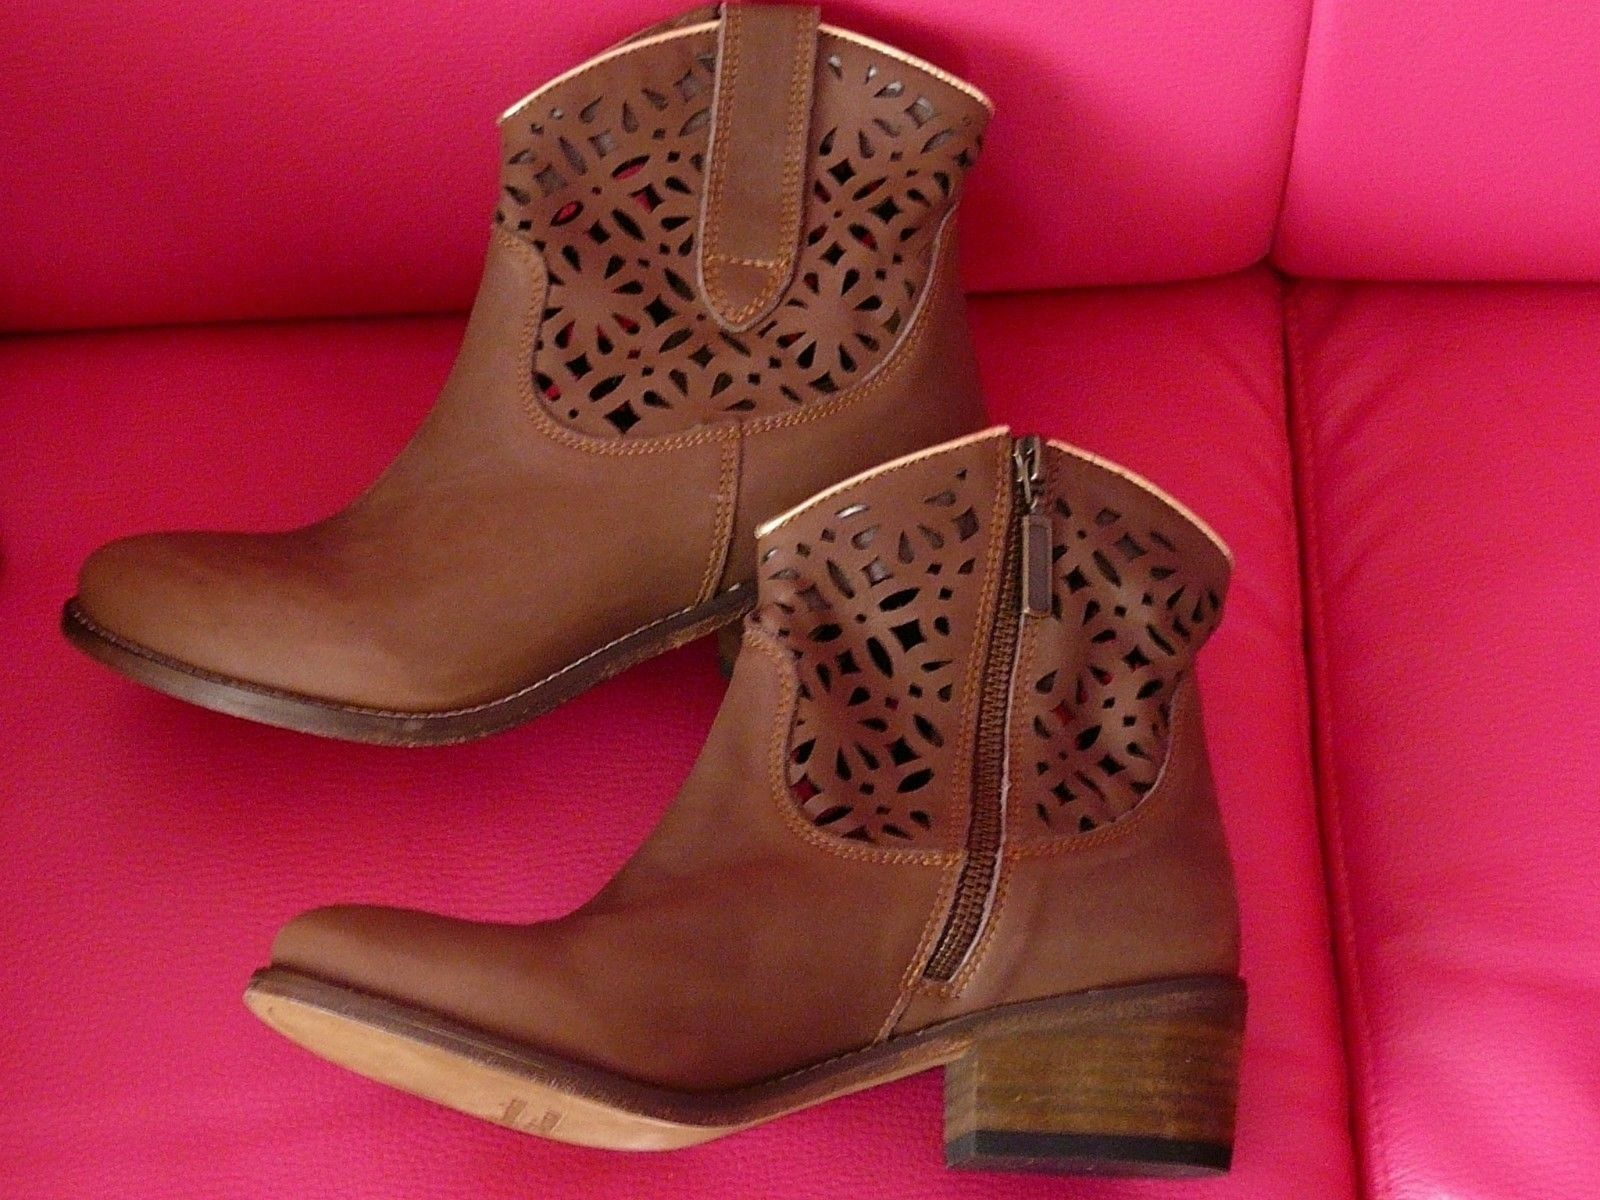 WESTERN  botas    TEXANI mujer  Talla 37  new by E.G.J. all leather made  78fd08